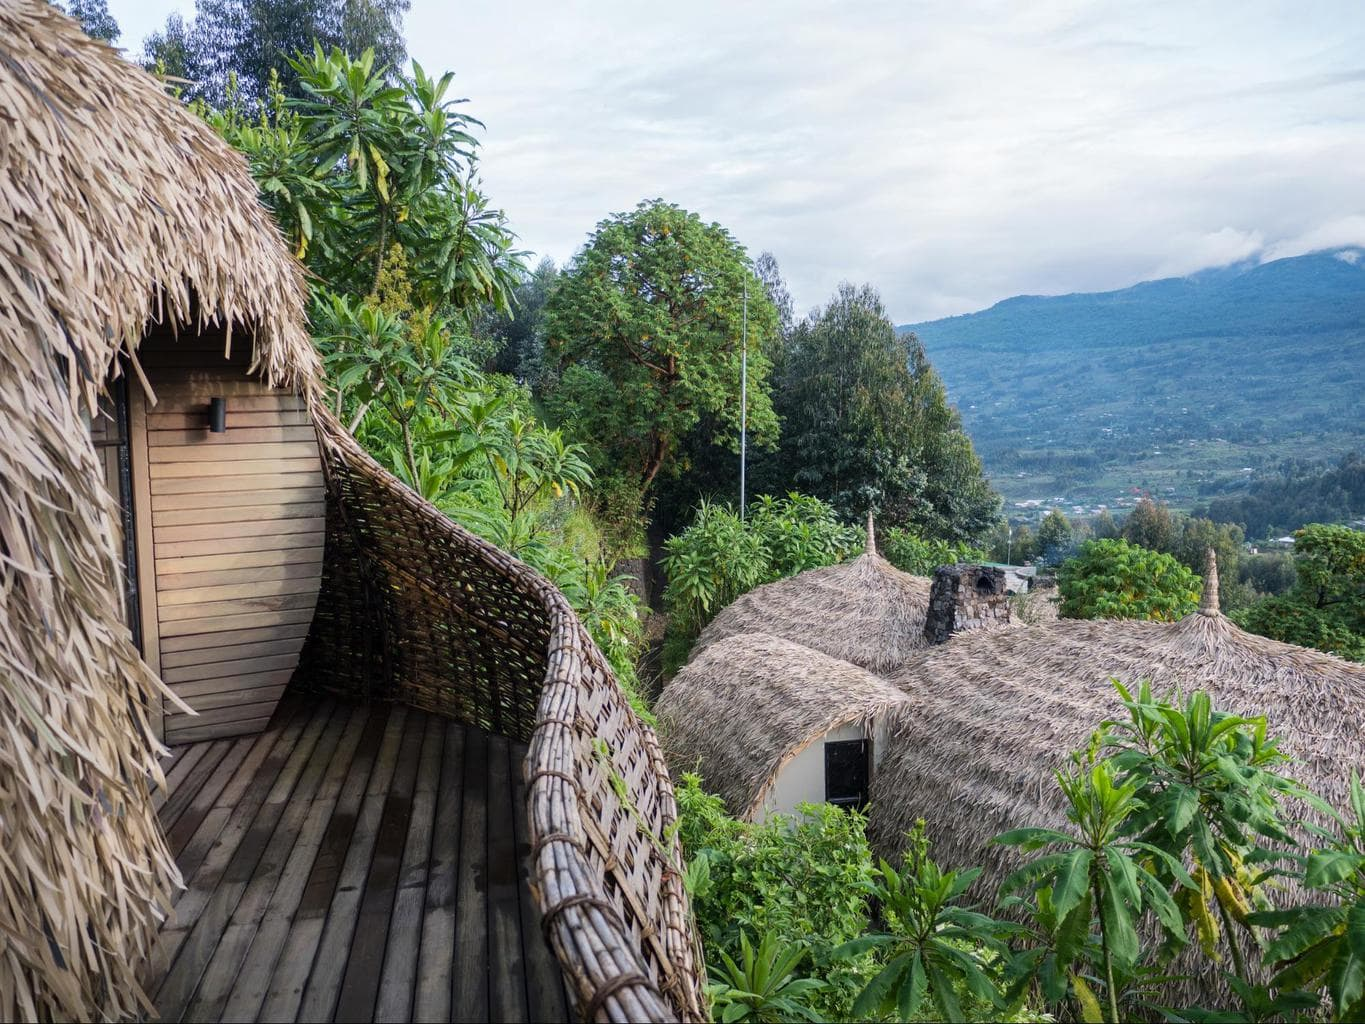 The villas at Bisate Lodge perched on the volcano's edge